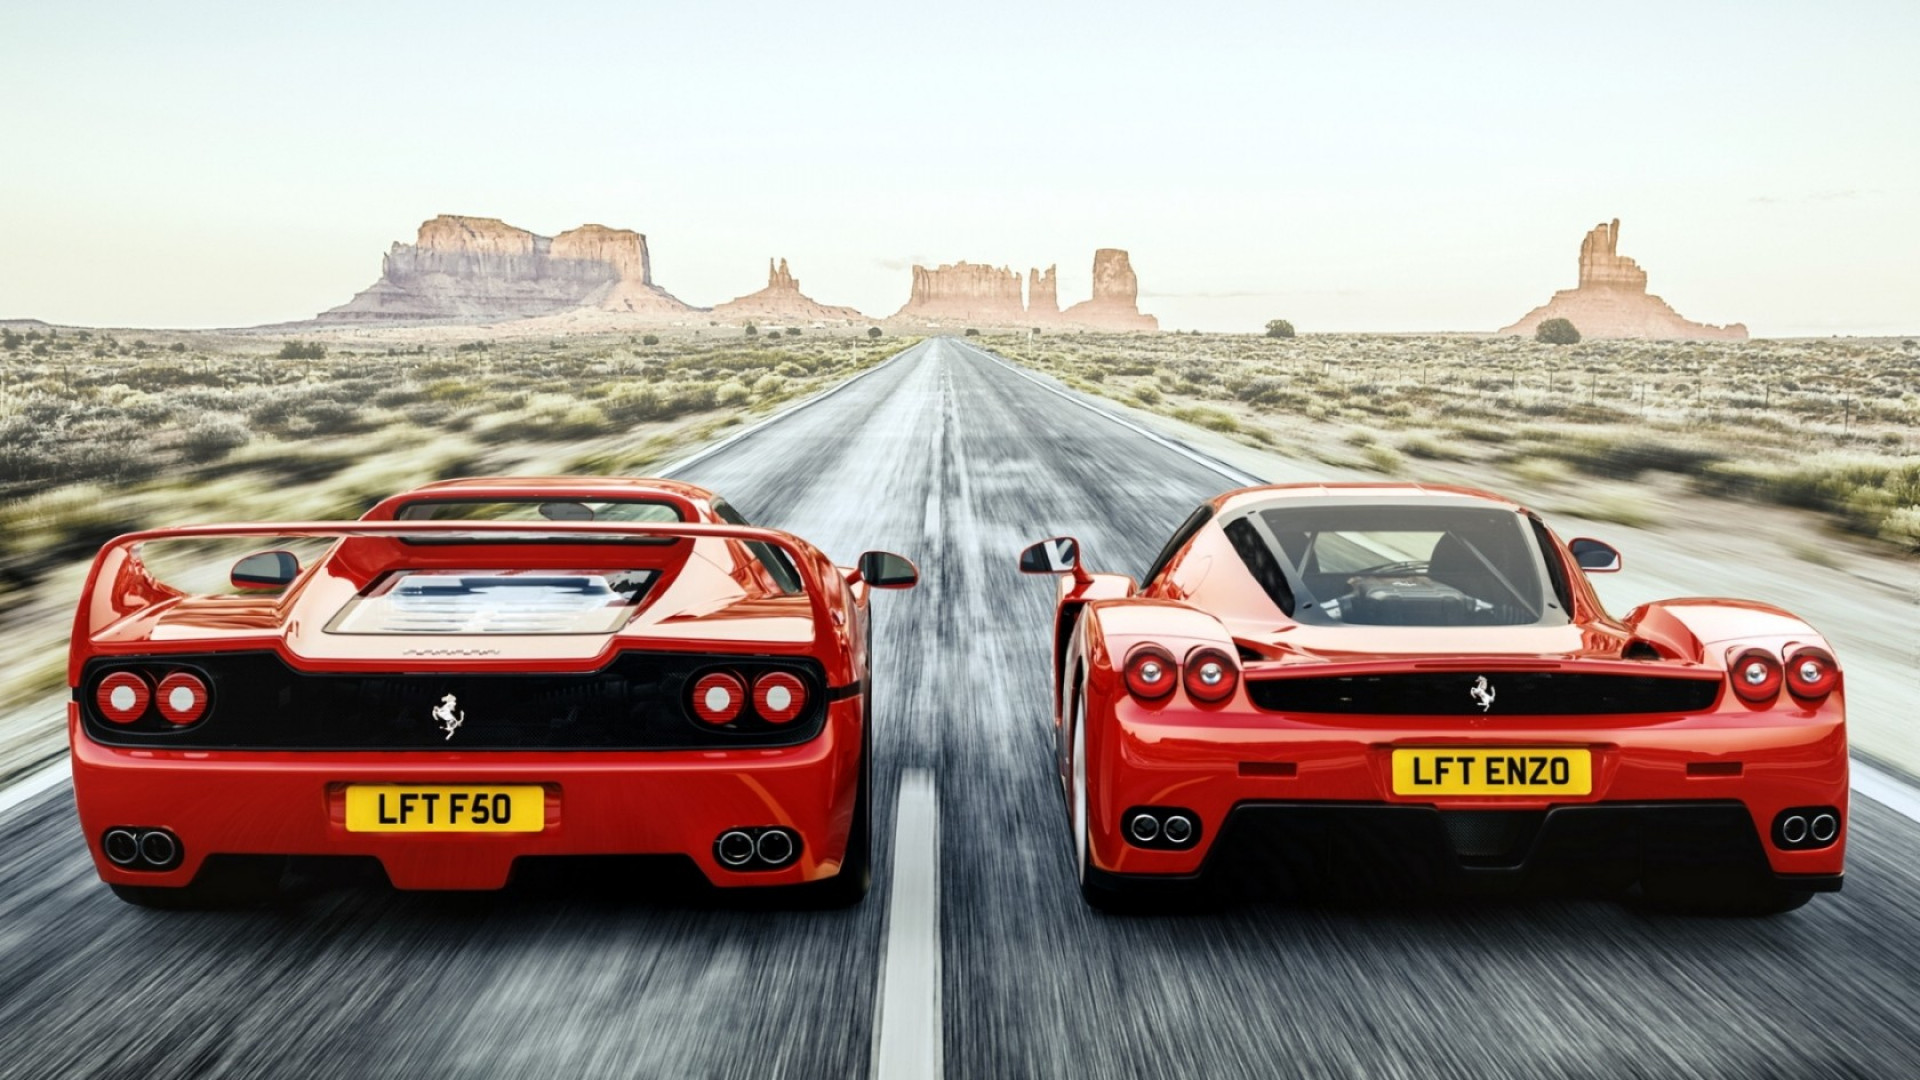 1920x1080  Wallpaper ferrari, f50, enzo, rear view, speed, road